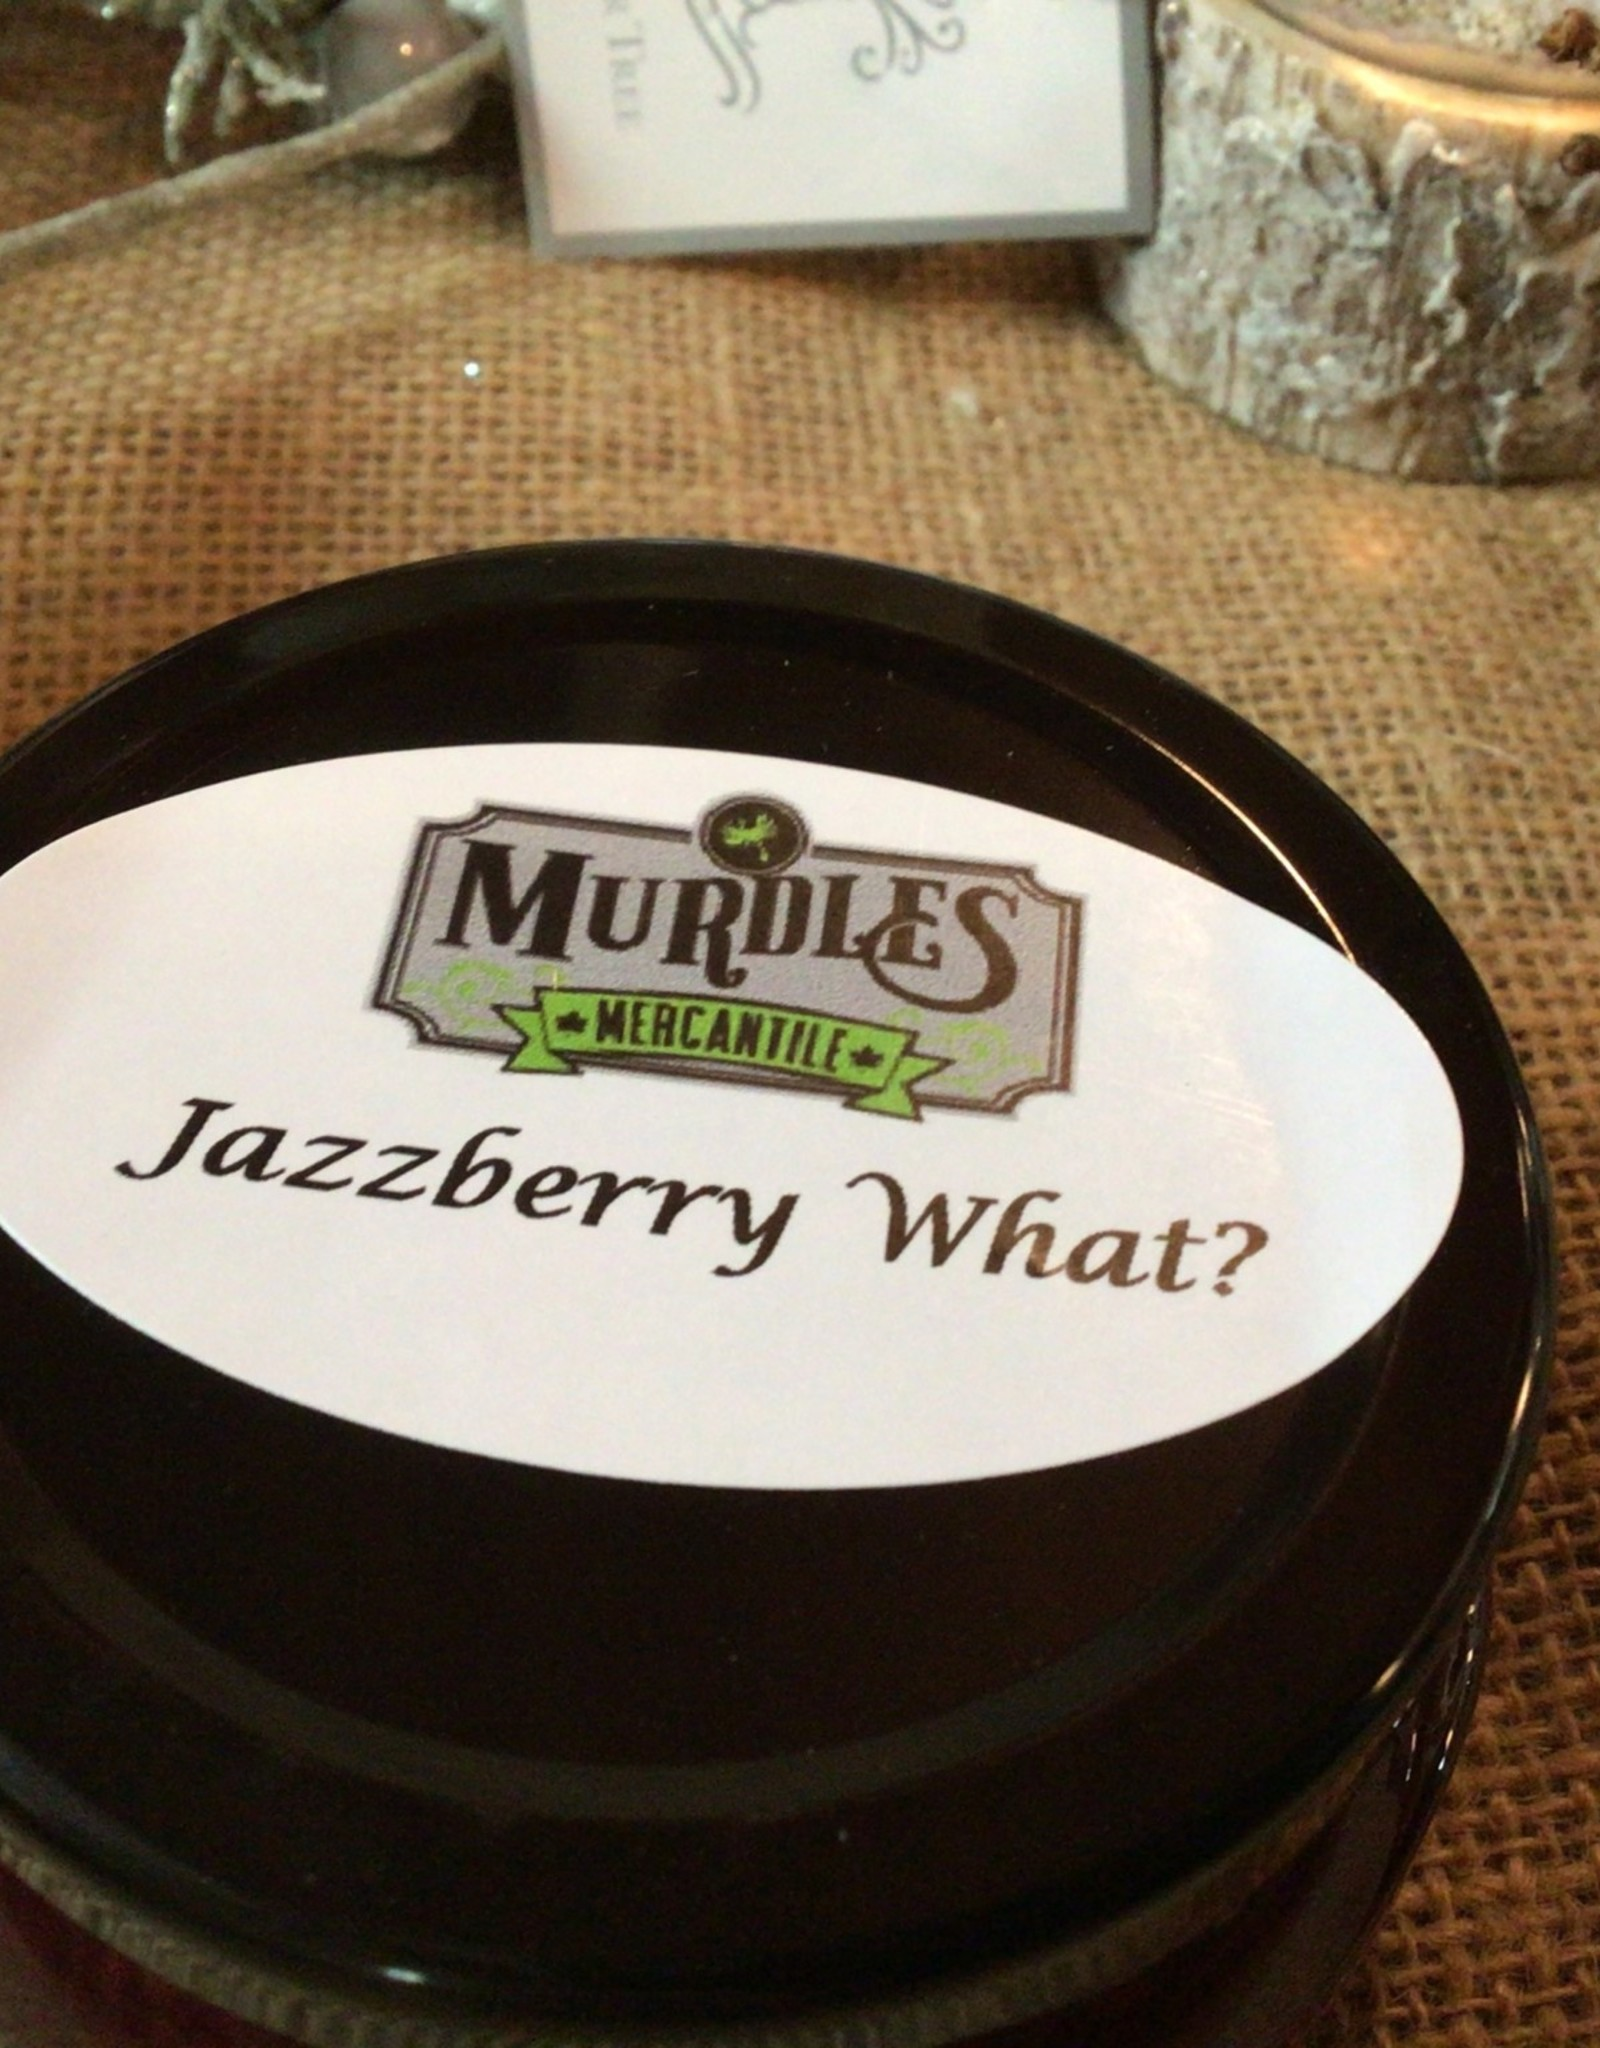 Murdles's Mercantile Jazzberry  What